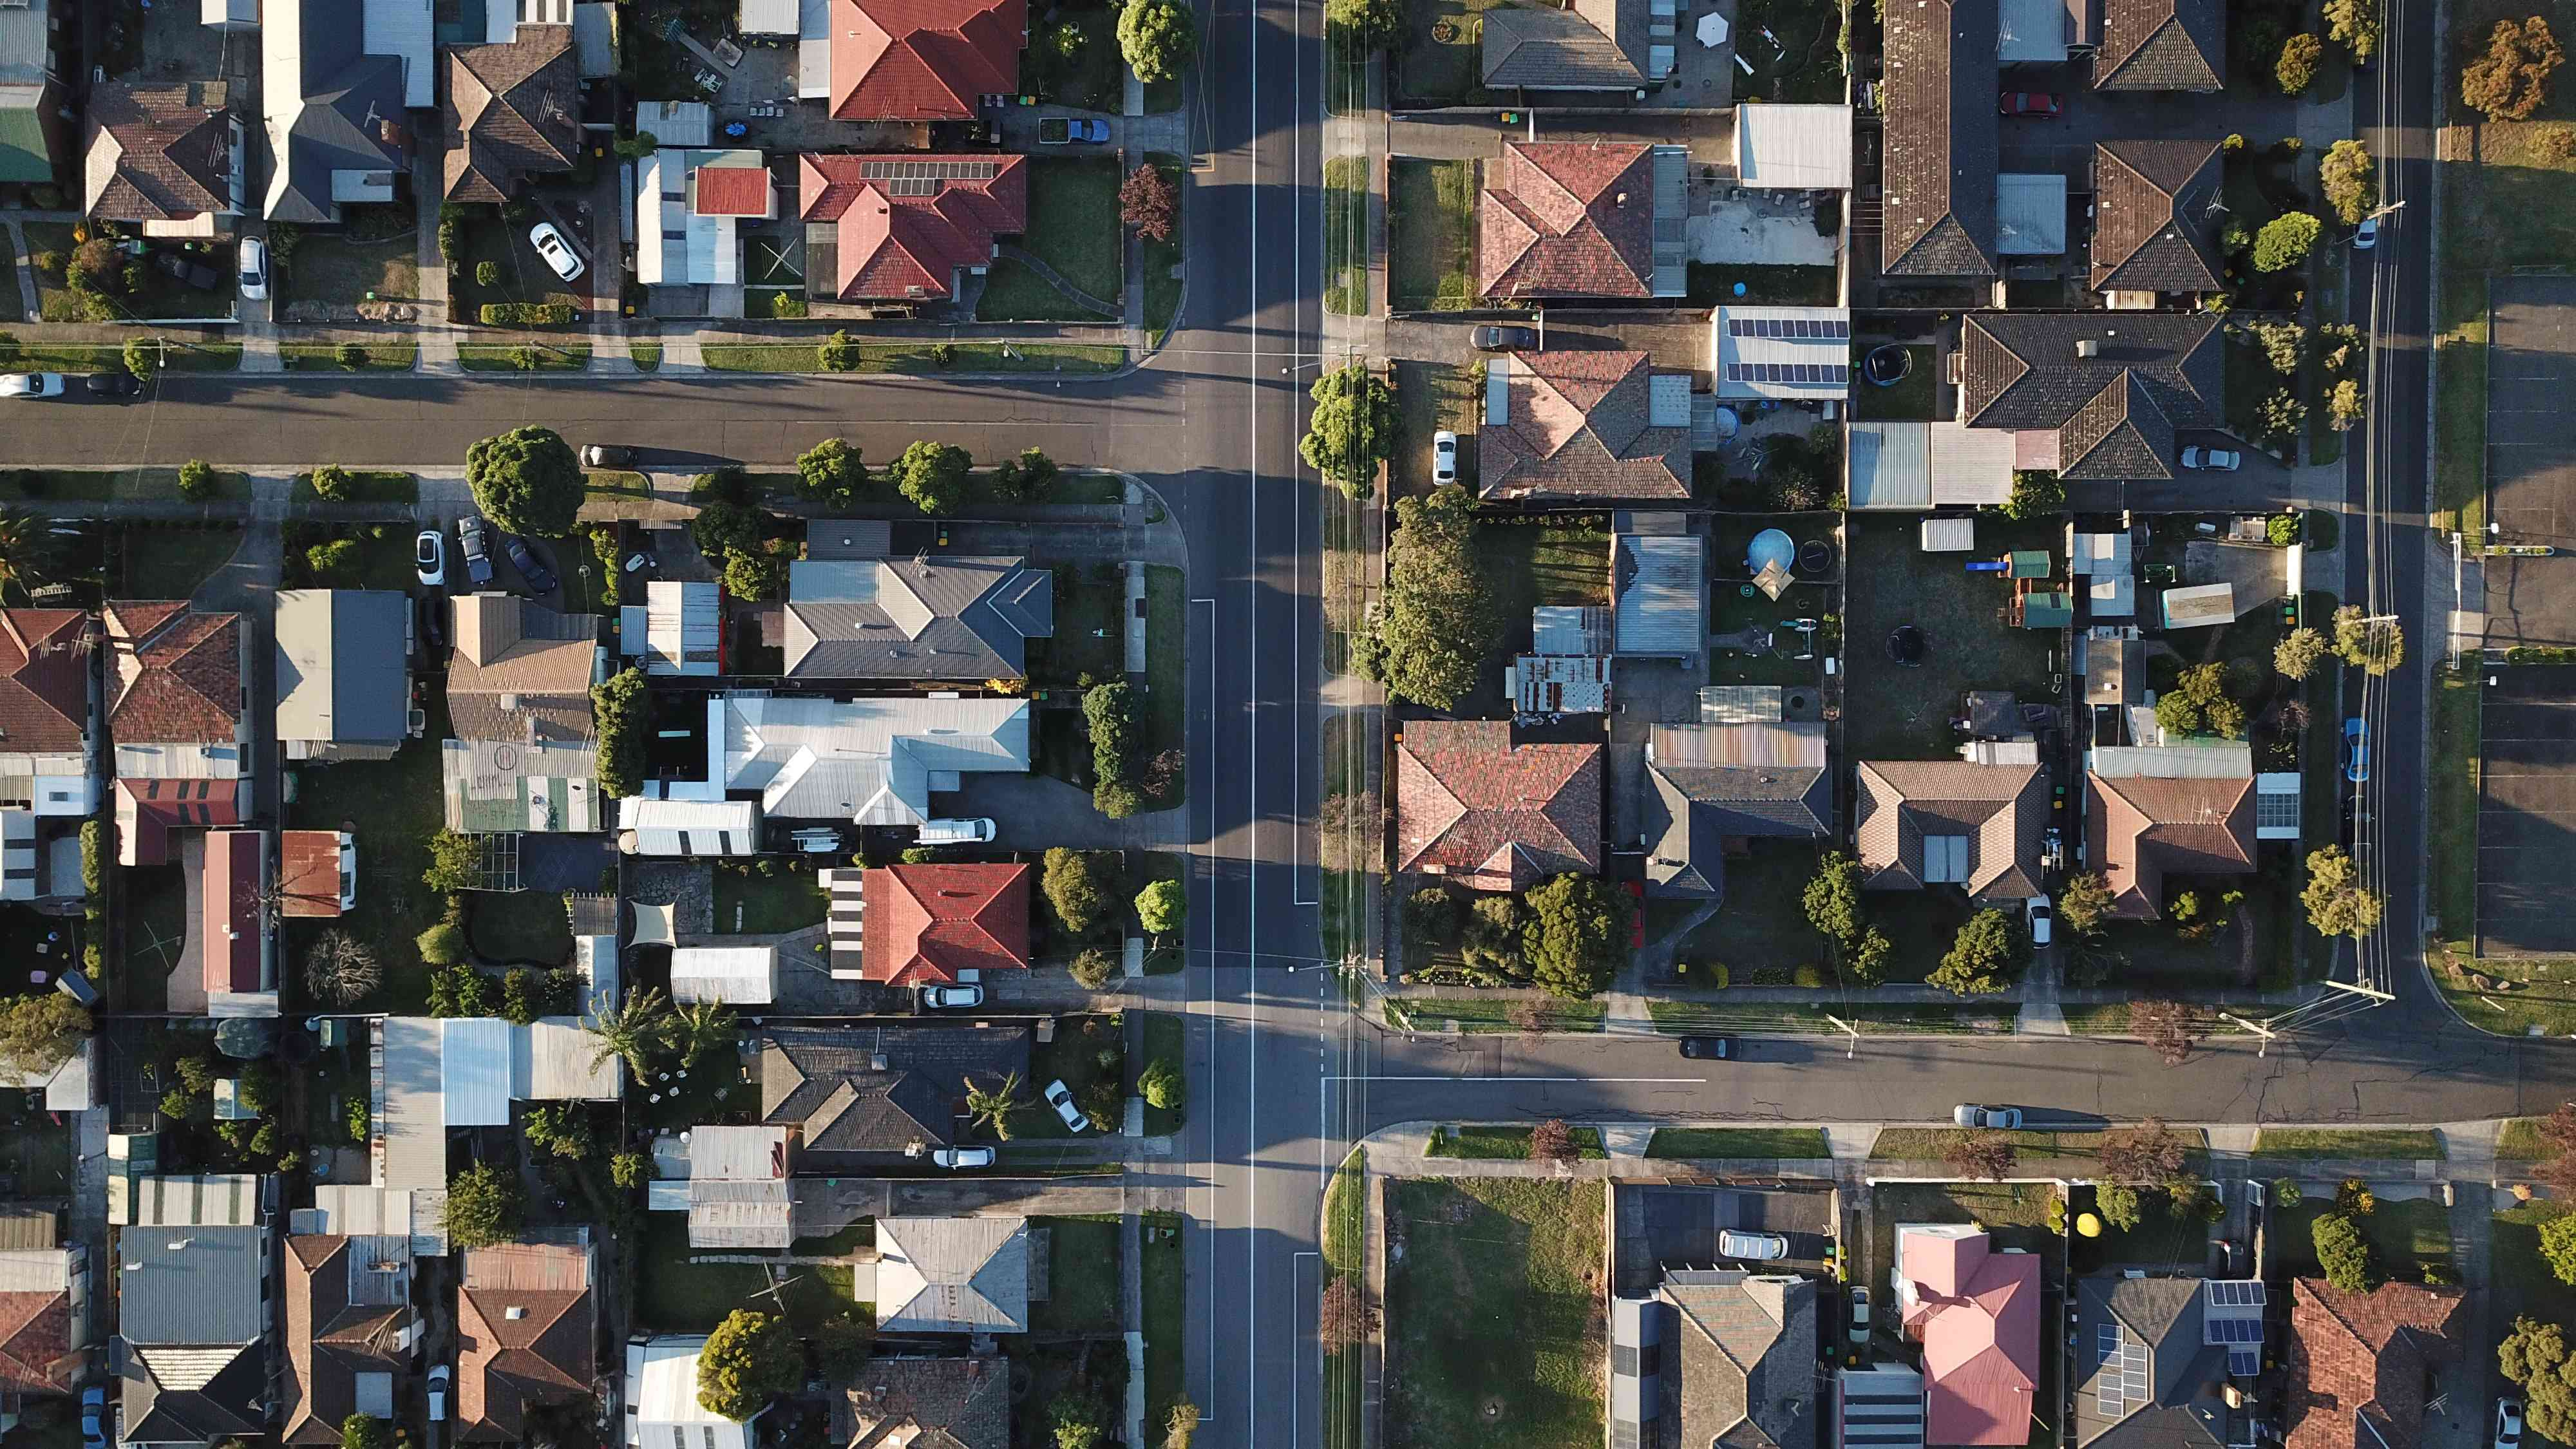 aeriel view of T intersections in a neighborhood